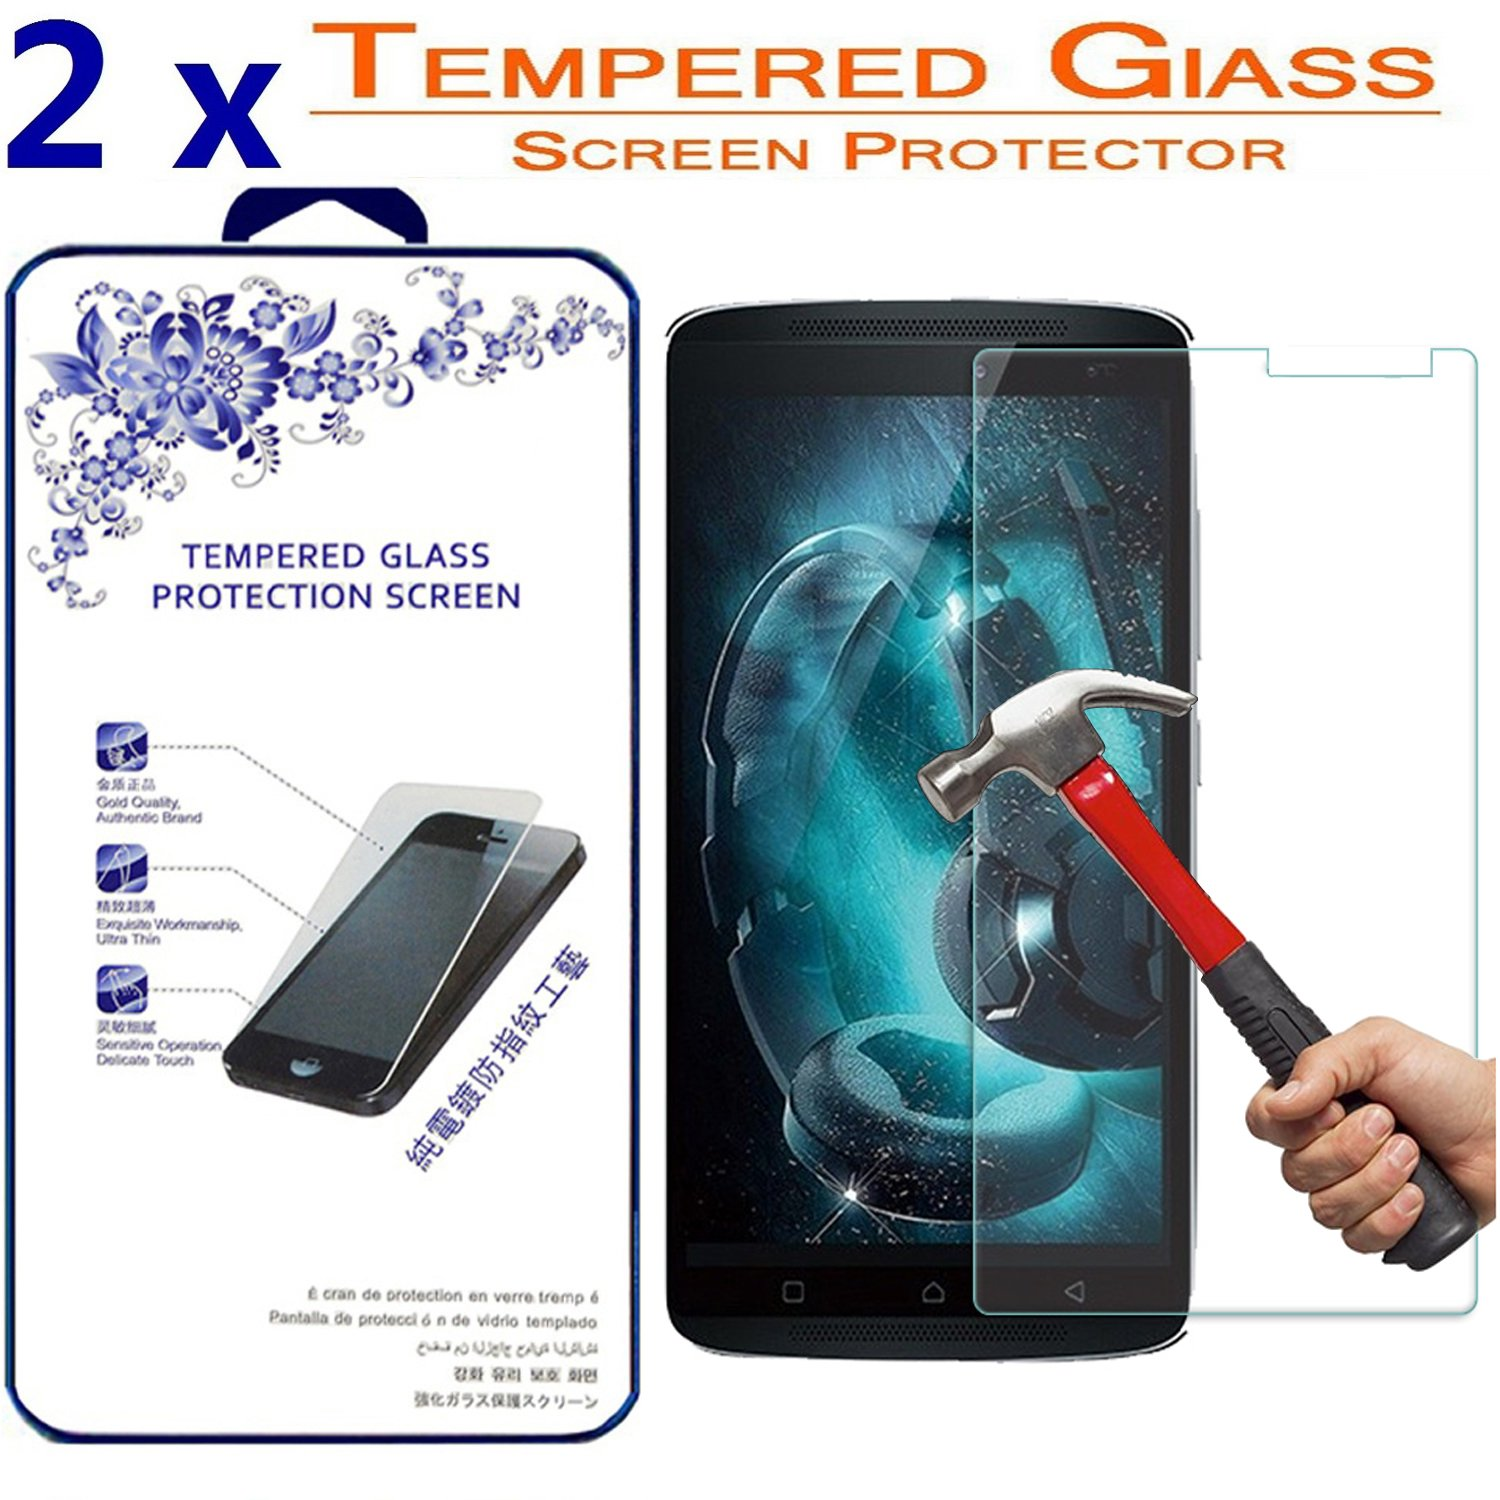 Amazon.com: 2x For Lenovo K4 Note / A7010 / X3 lite [ Tempered Glass ] Screen Protector ([2 Pack] For Lenovo K4 Note / A7010): Cell Phones & Accessories